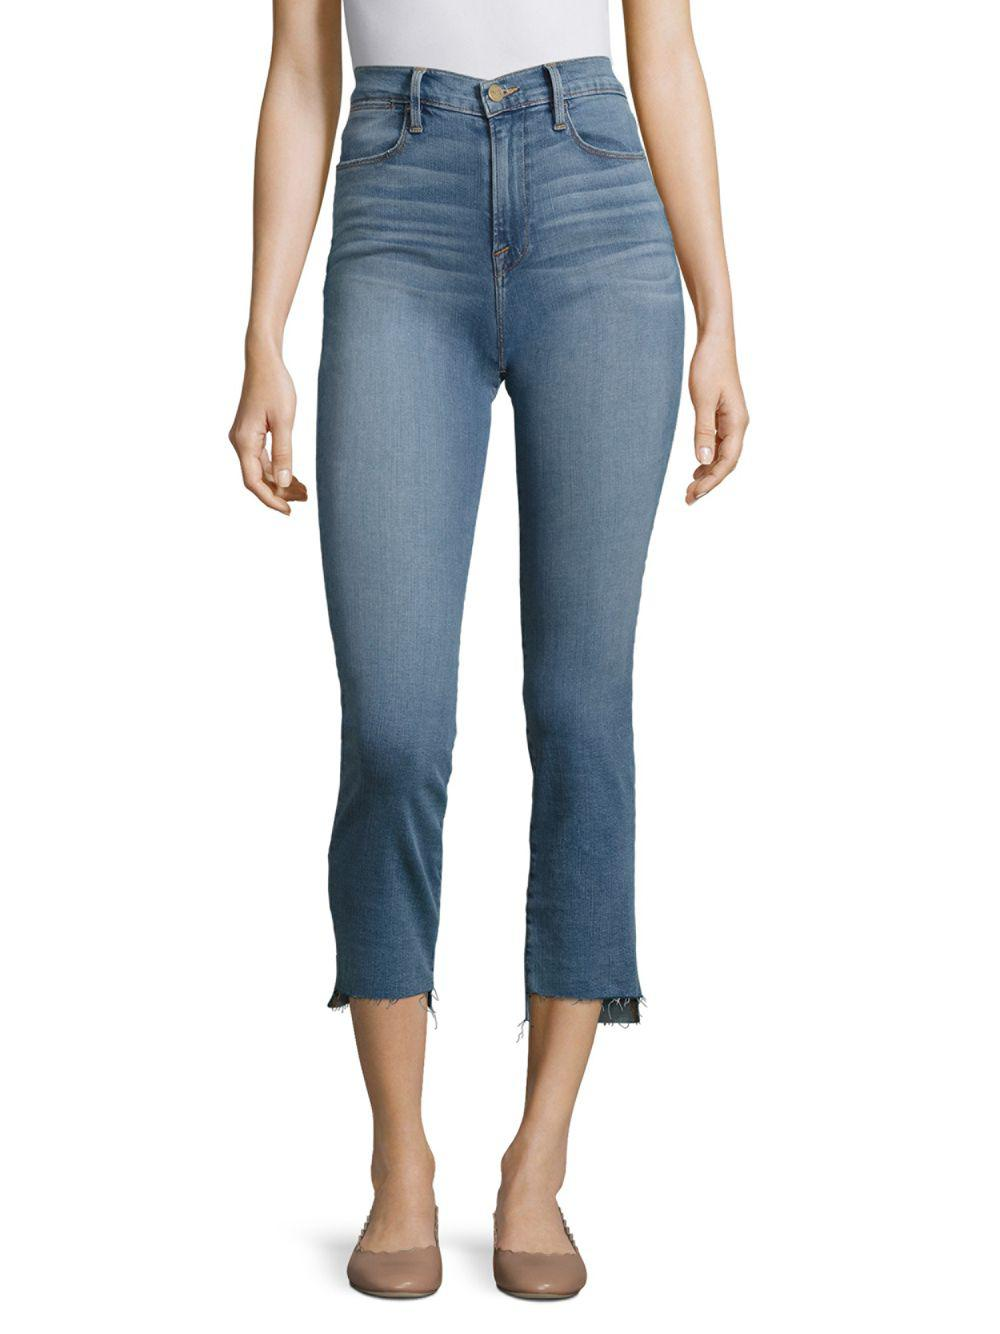 9e16f399b561d Lyst - FRAME Le High Straight-leg Step Hem Jeans in Blue - Save 28%